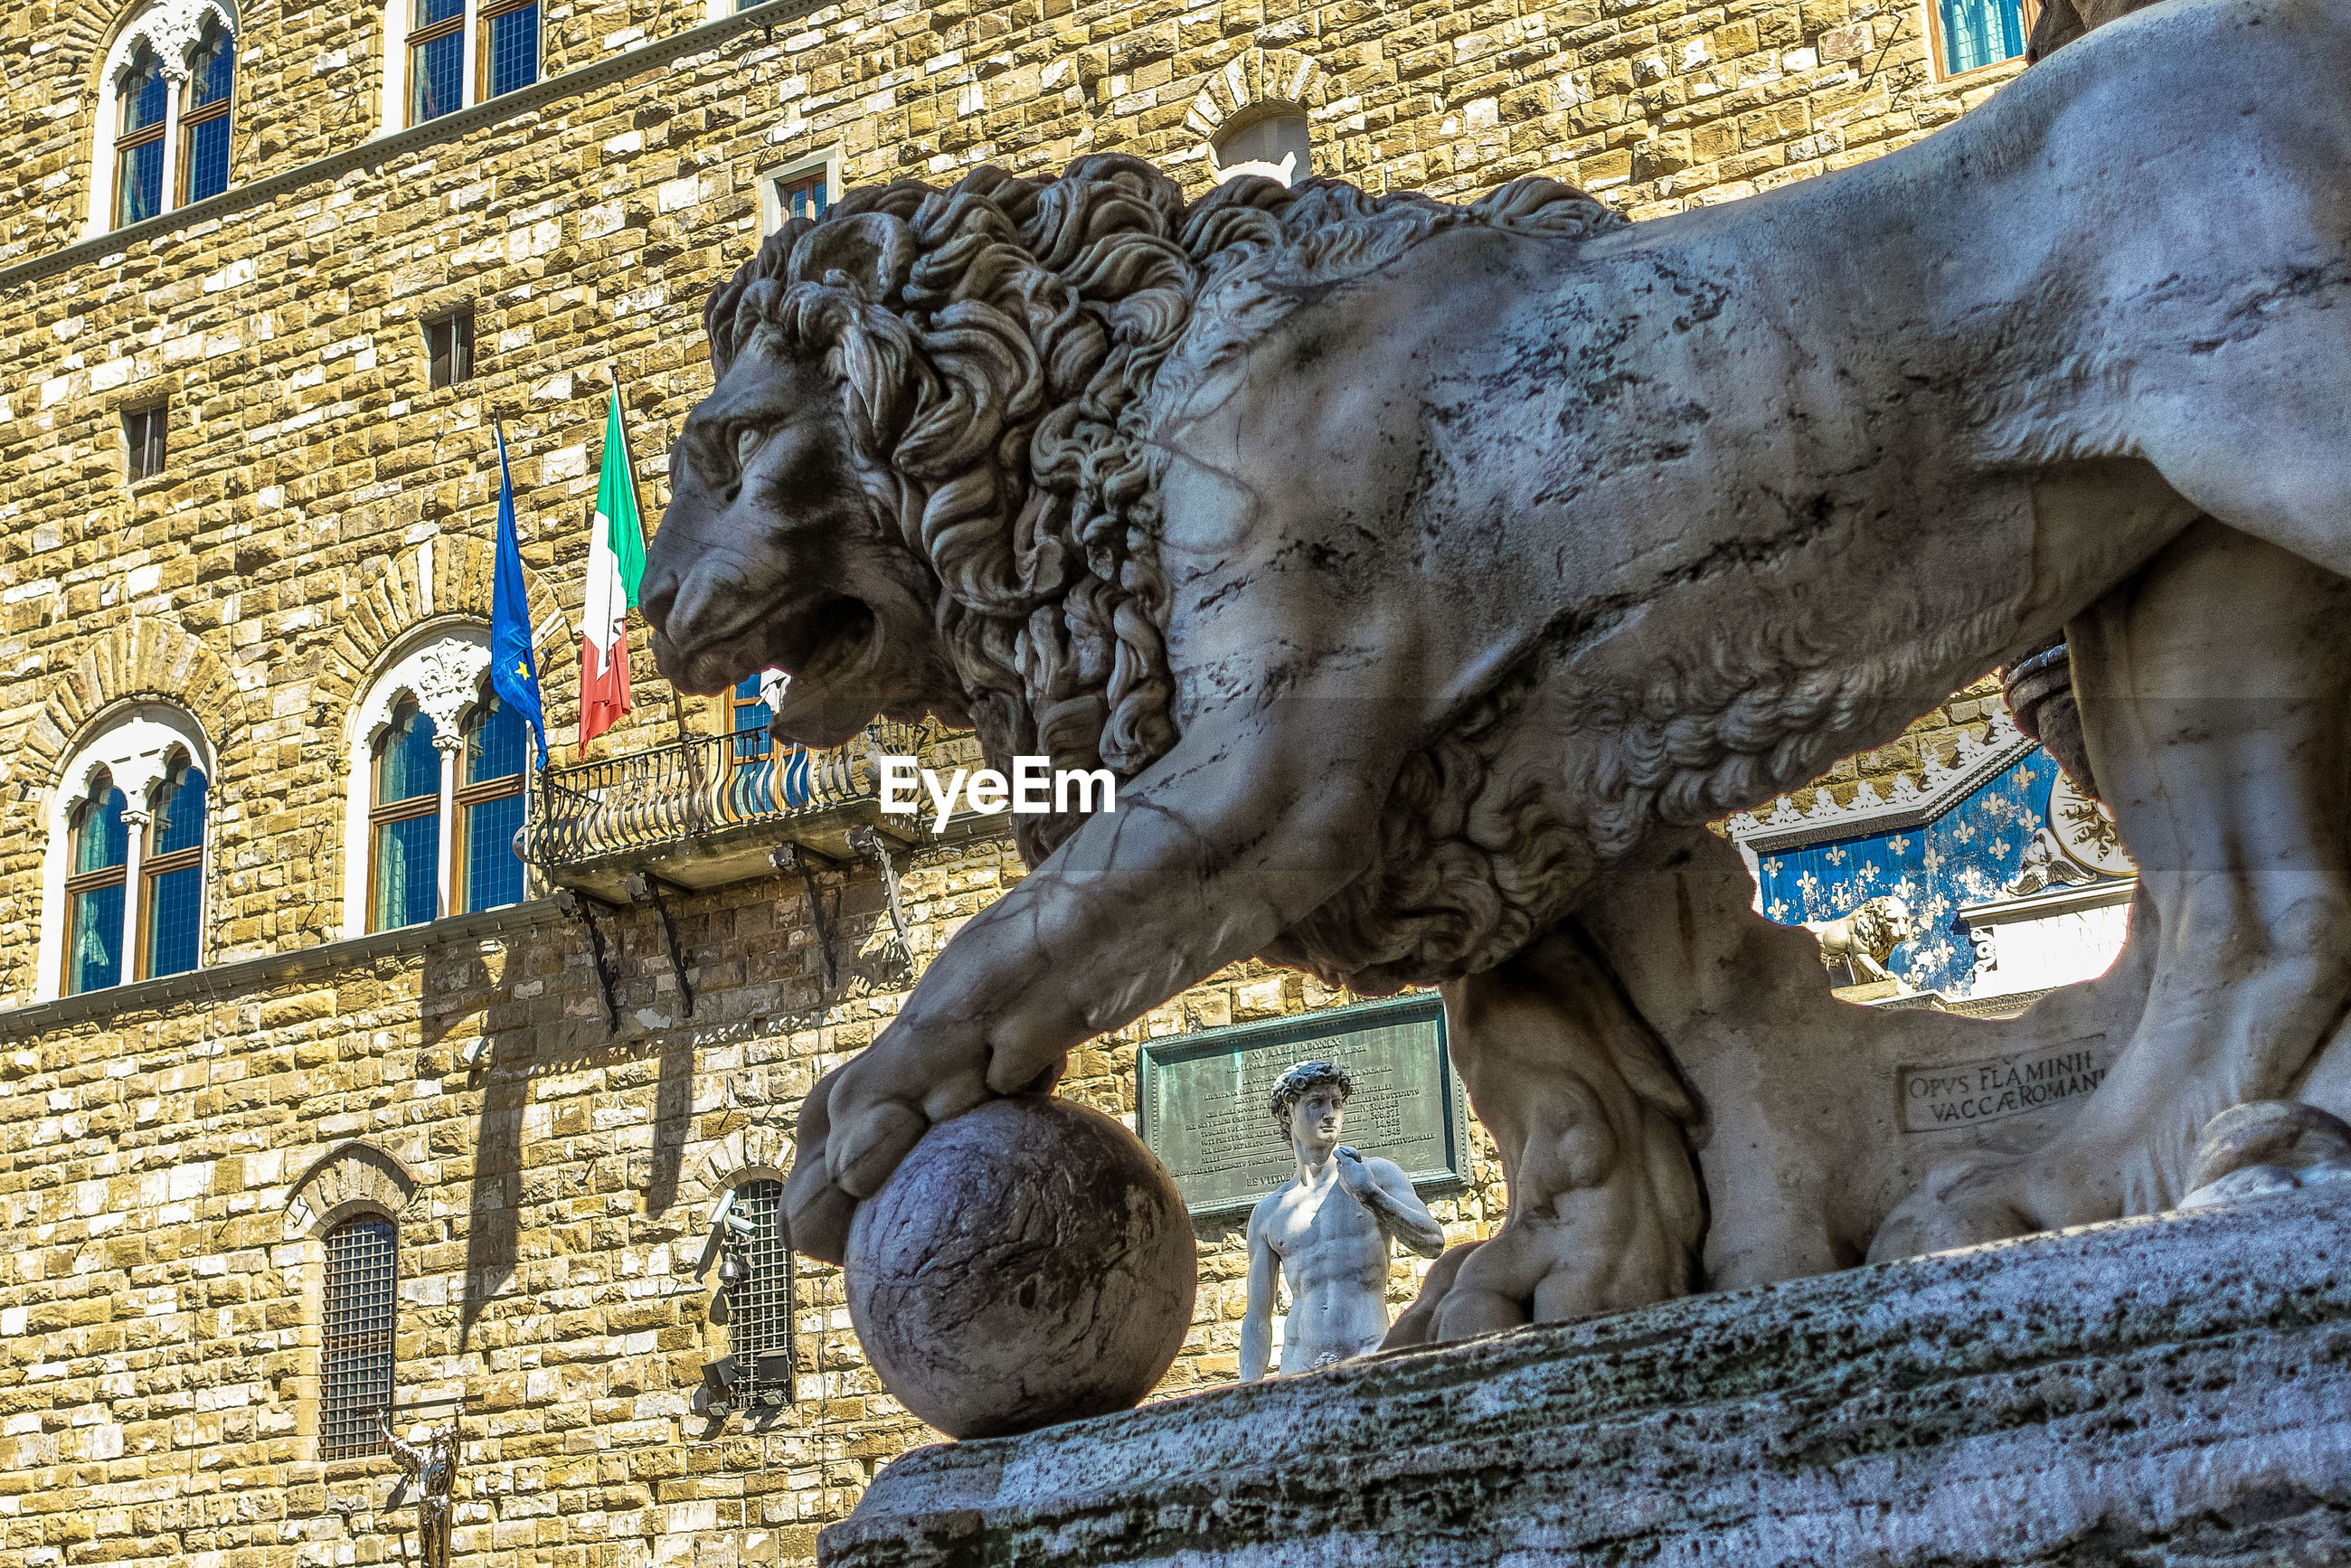 Low angle view of lion statue against historic building